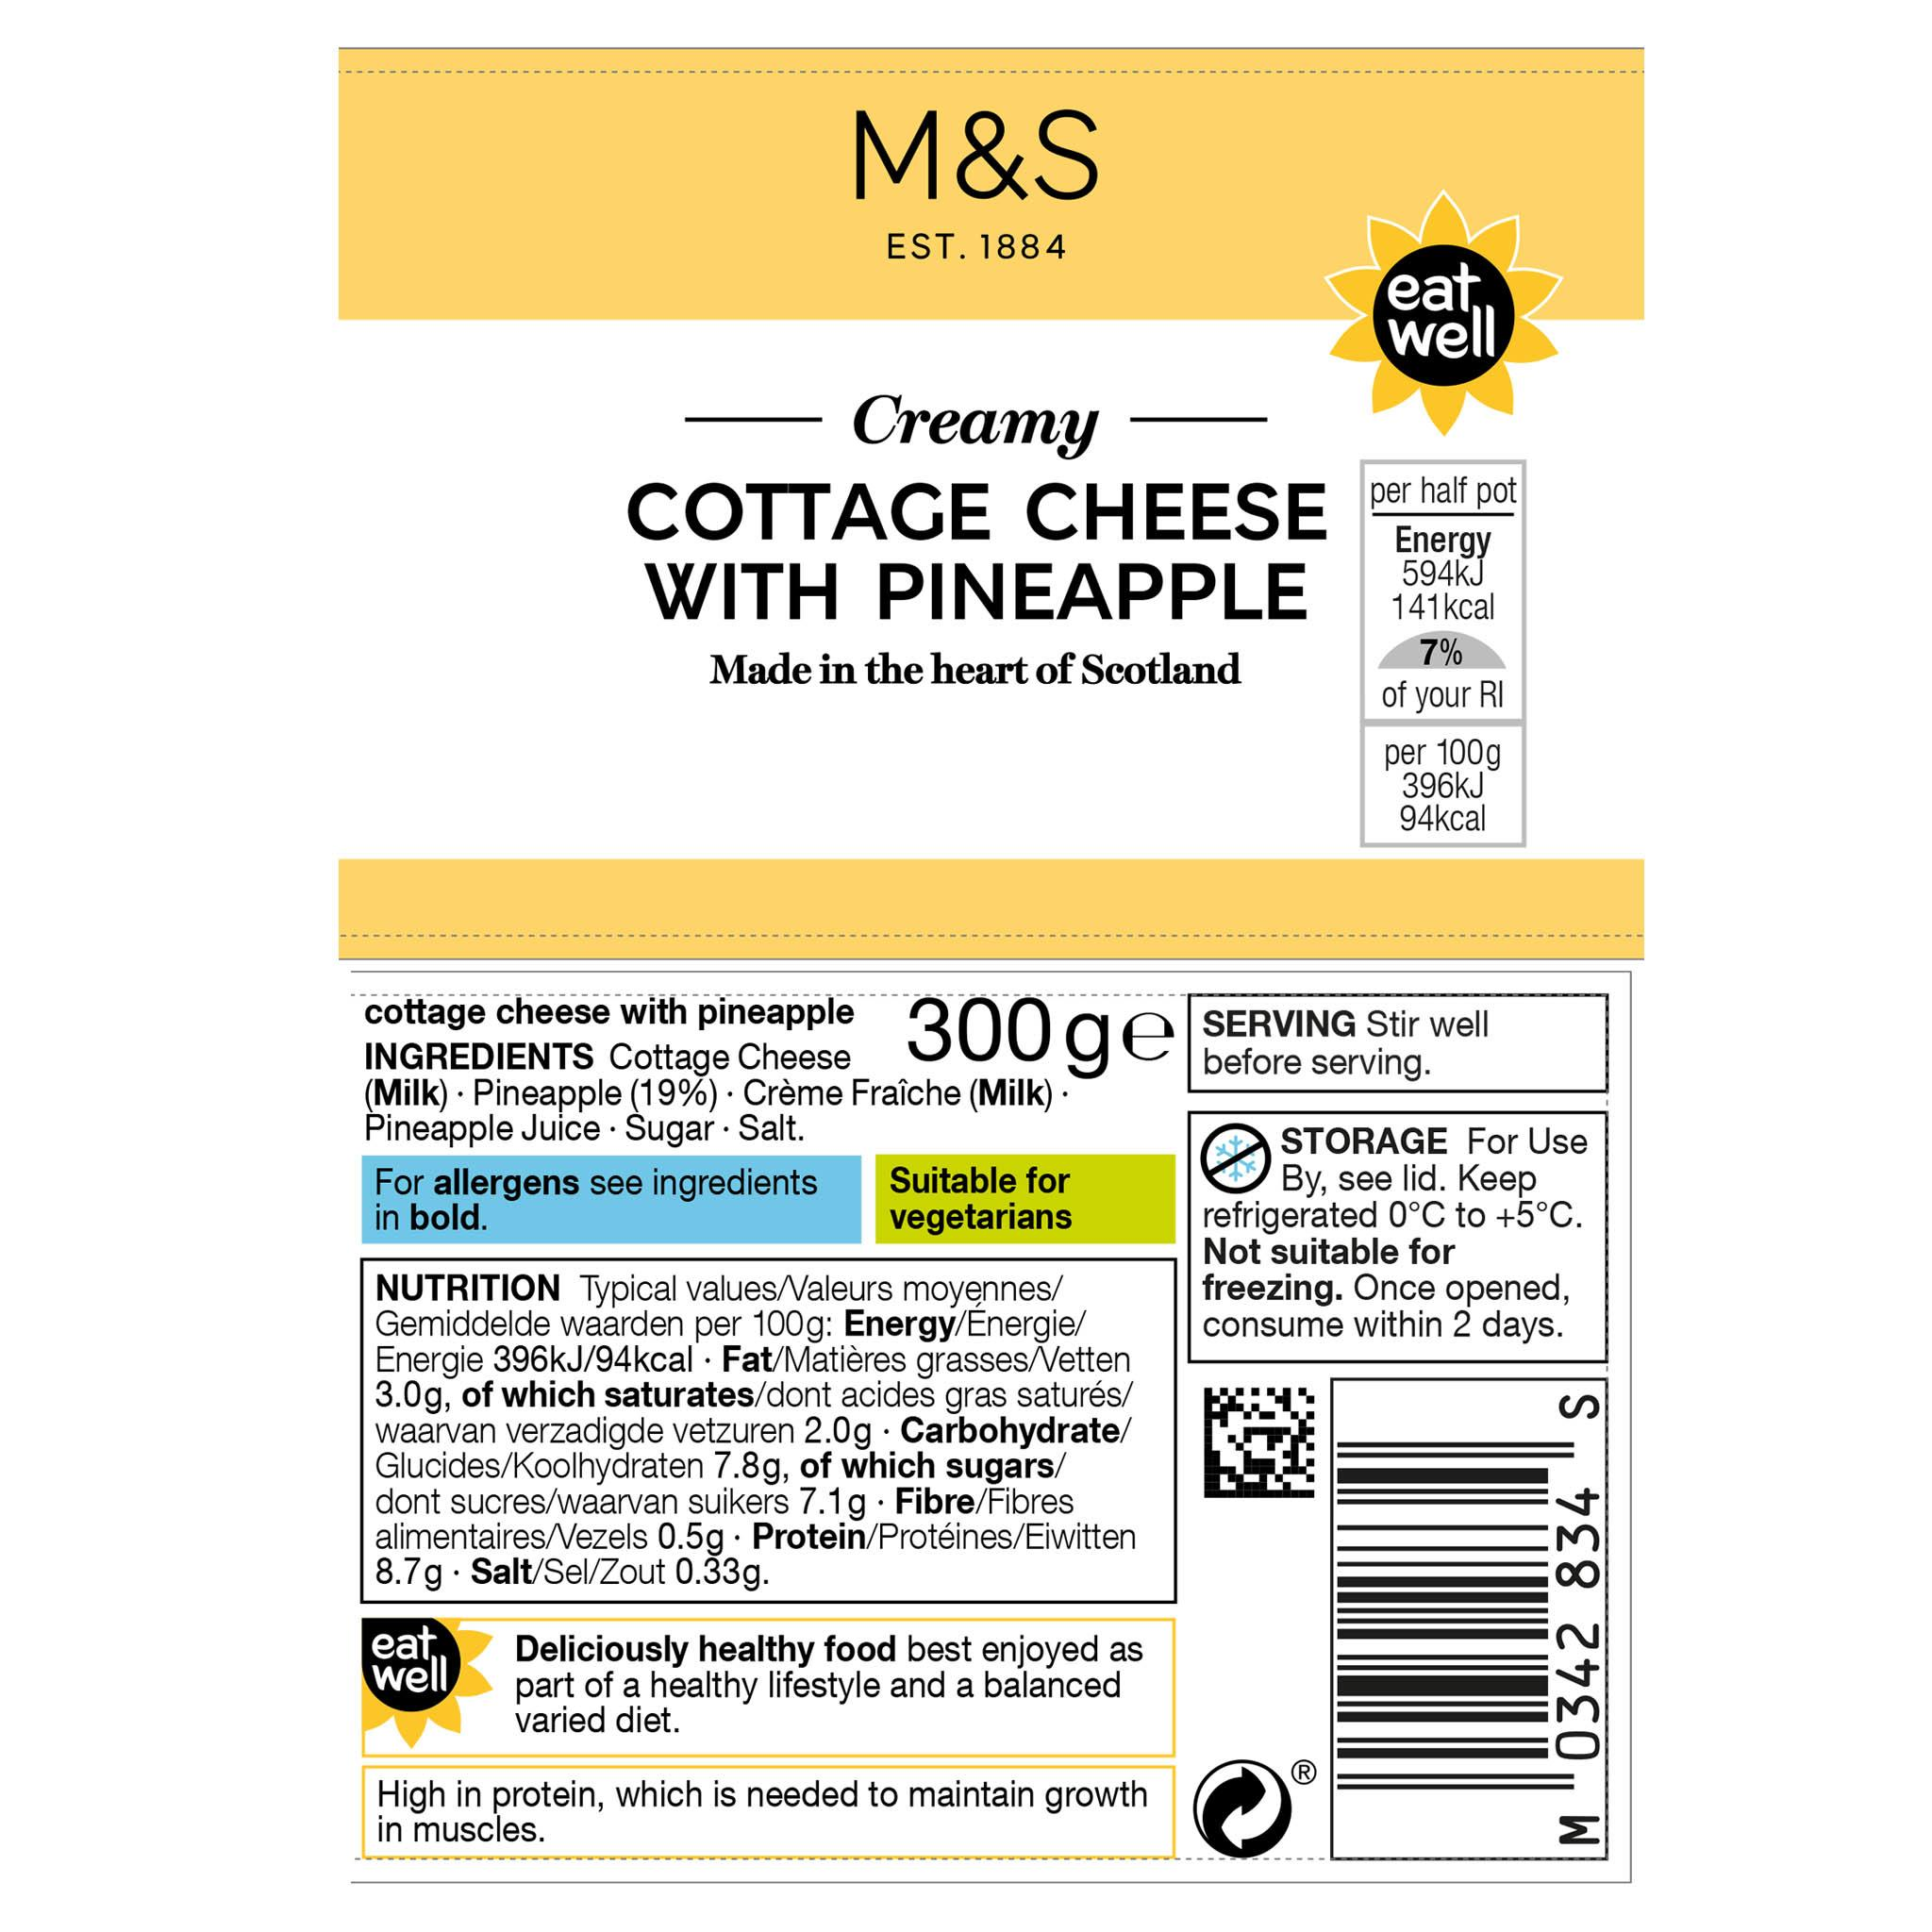 Cottage Cheese with Pineapple 300g Label